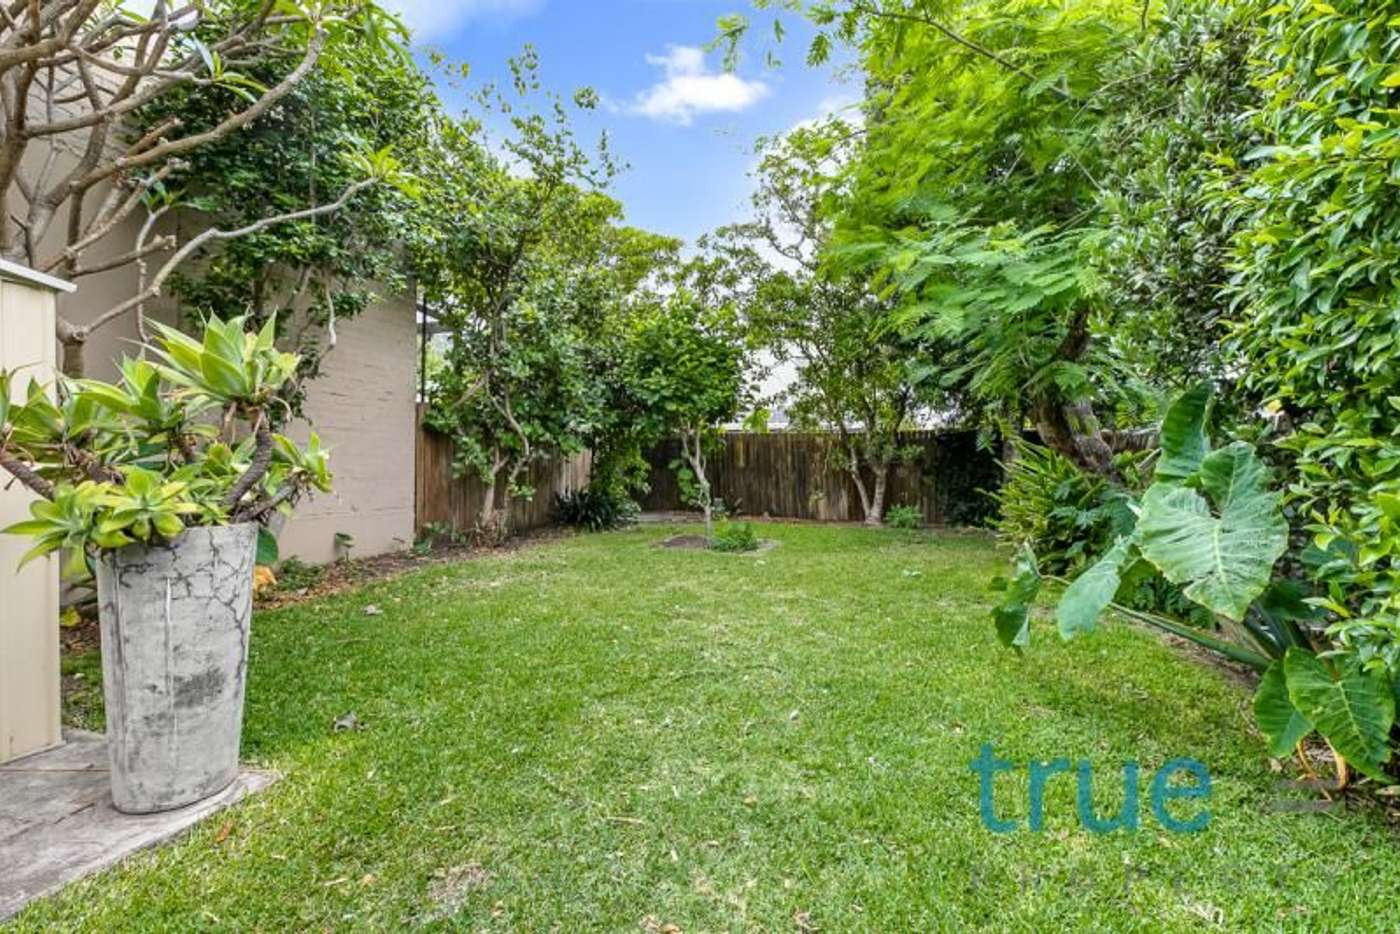 Main view of Homely house listing, 70 Day Street, Leichhardt NSW 2040